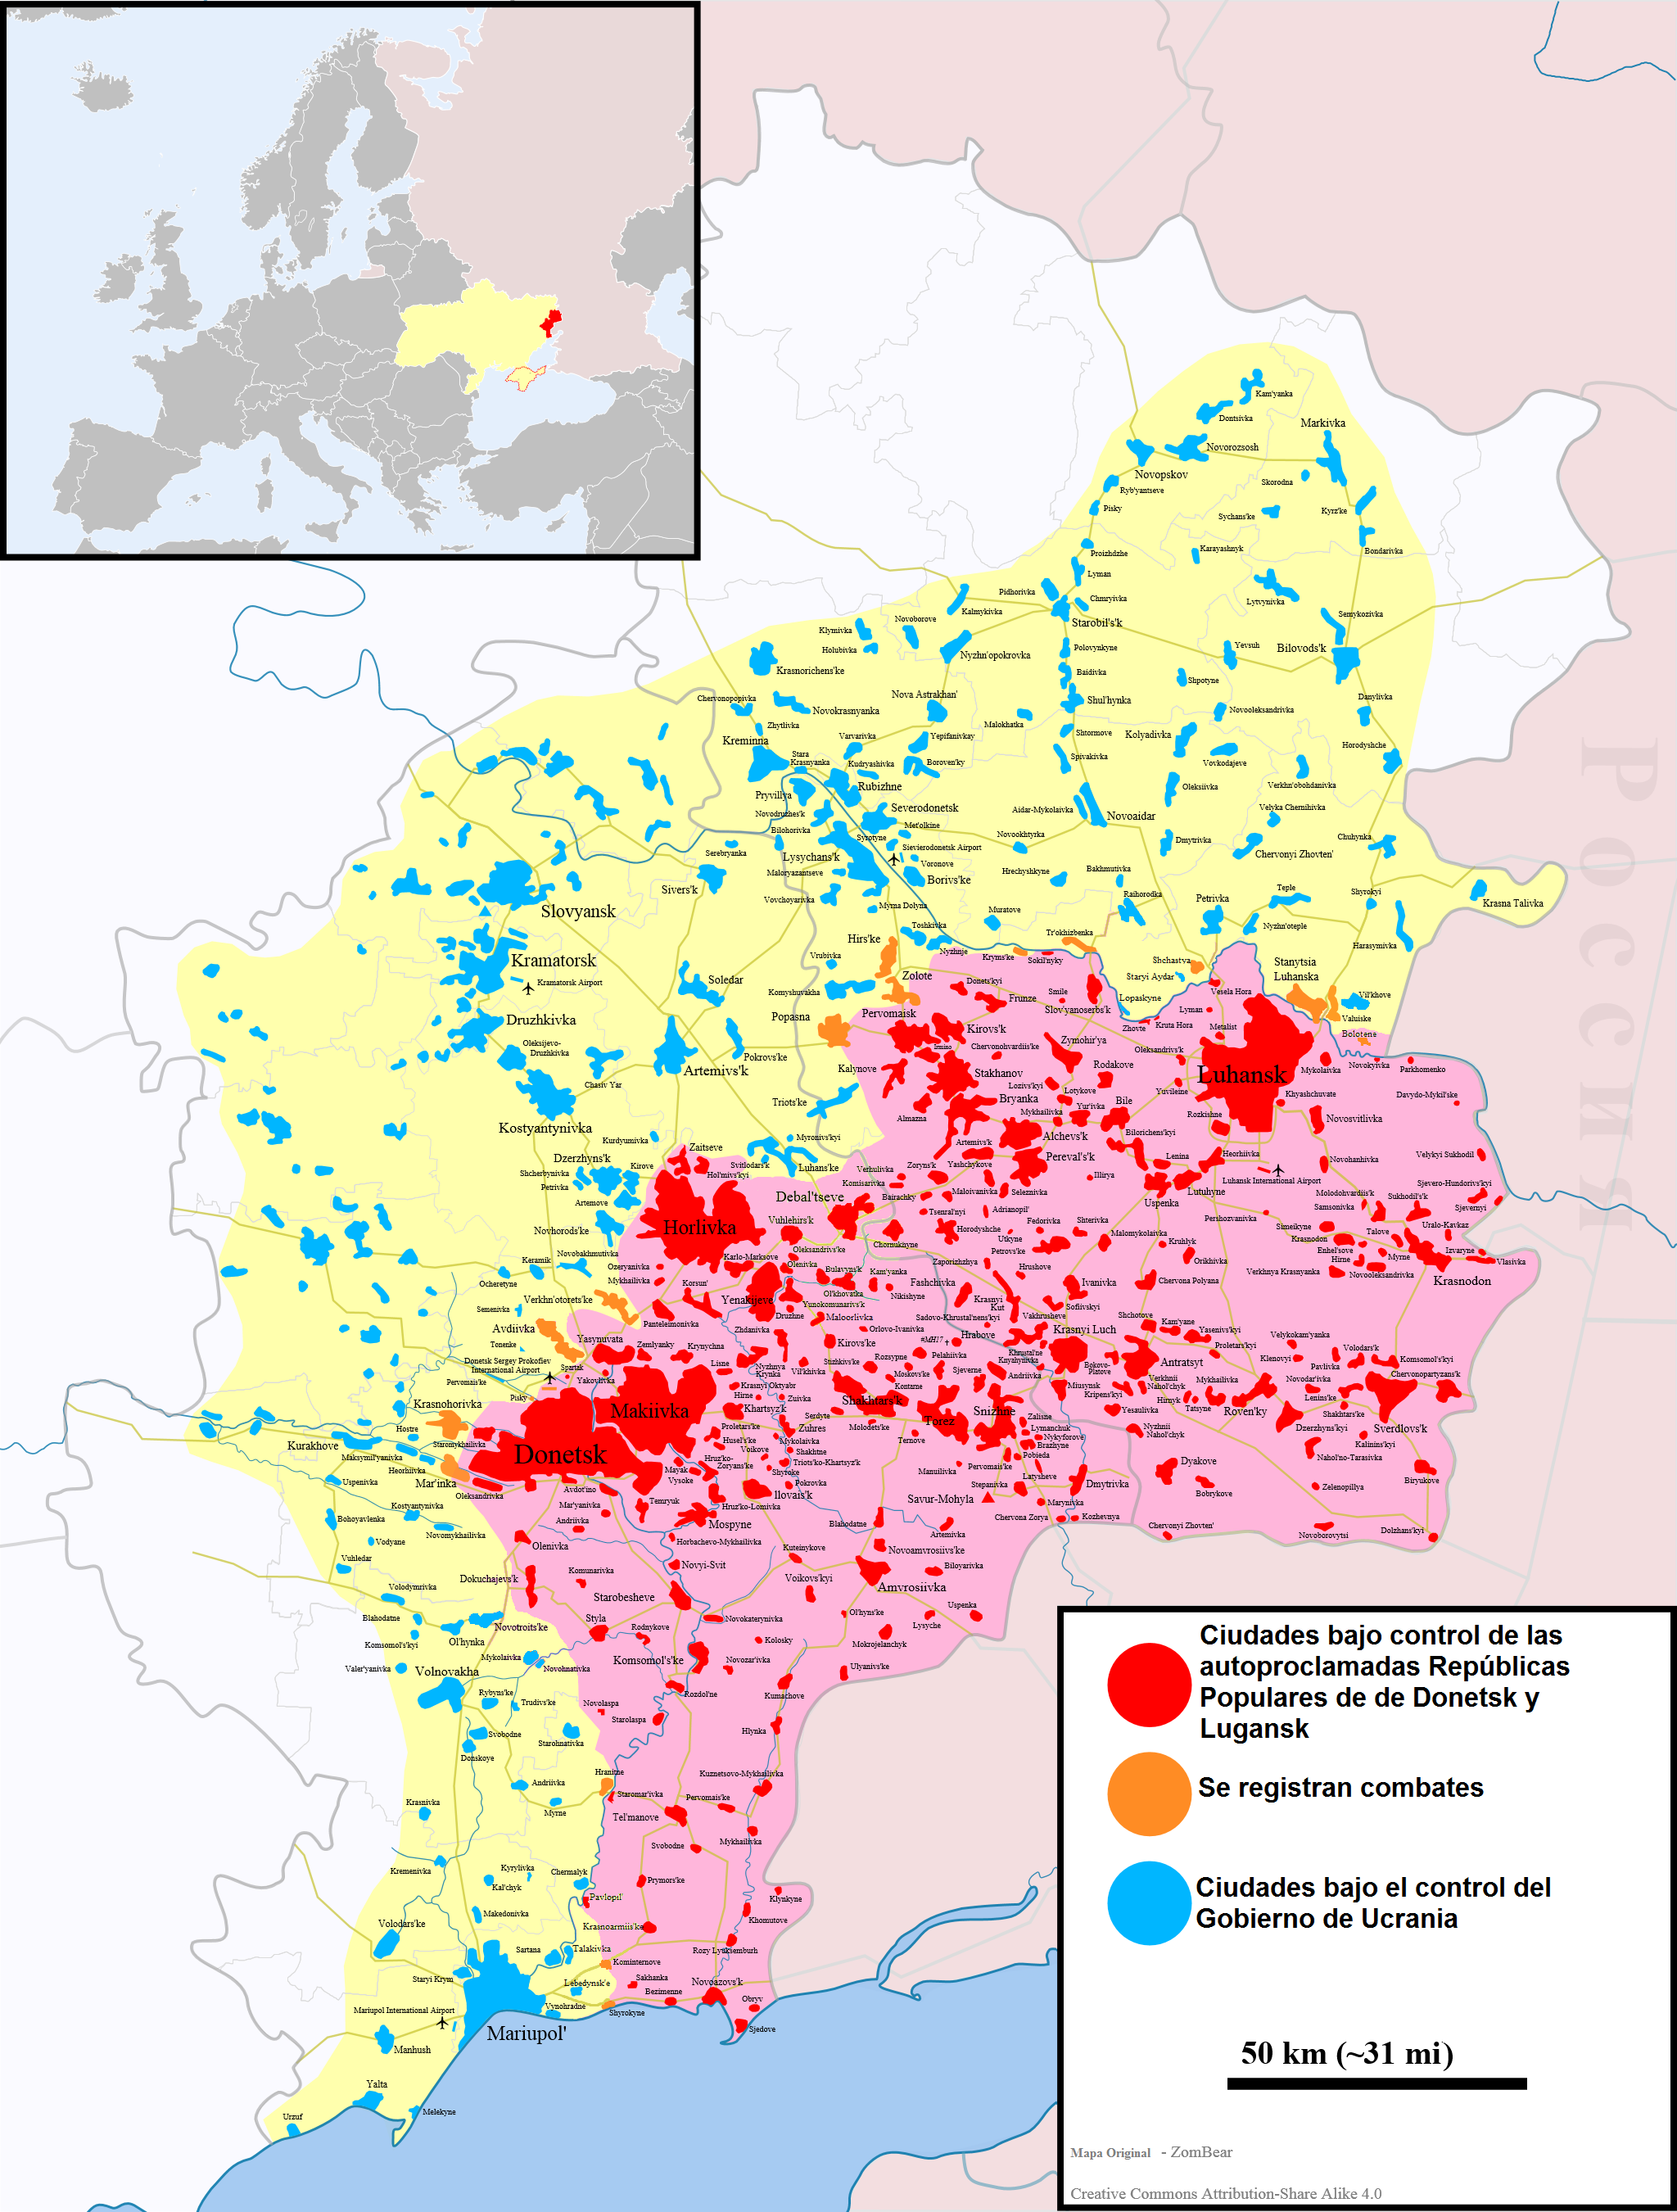 http://upload.wikimedia.org/wikipedia/commons/b/b4/Insurgencia_en_Donbass.png